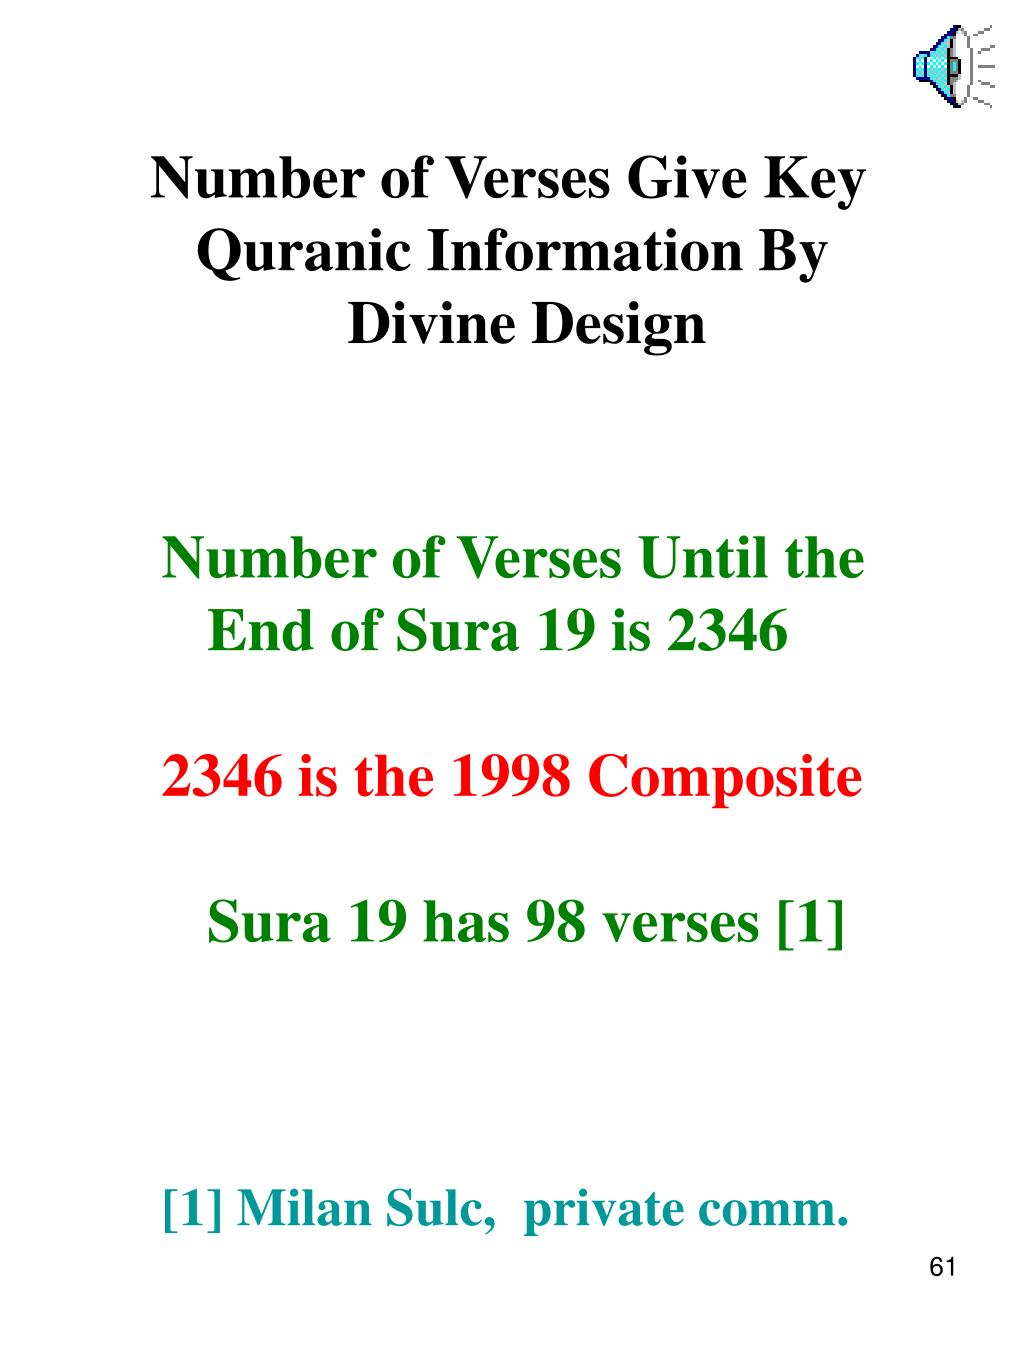 Number of Verses Give Key